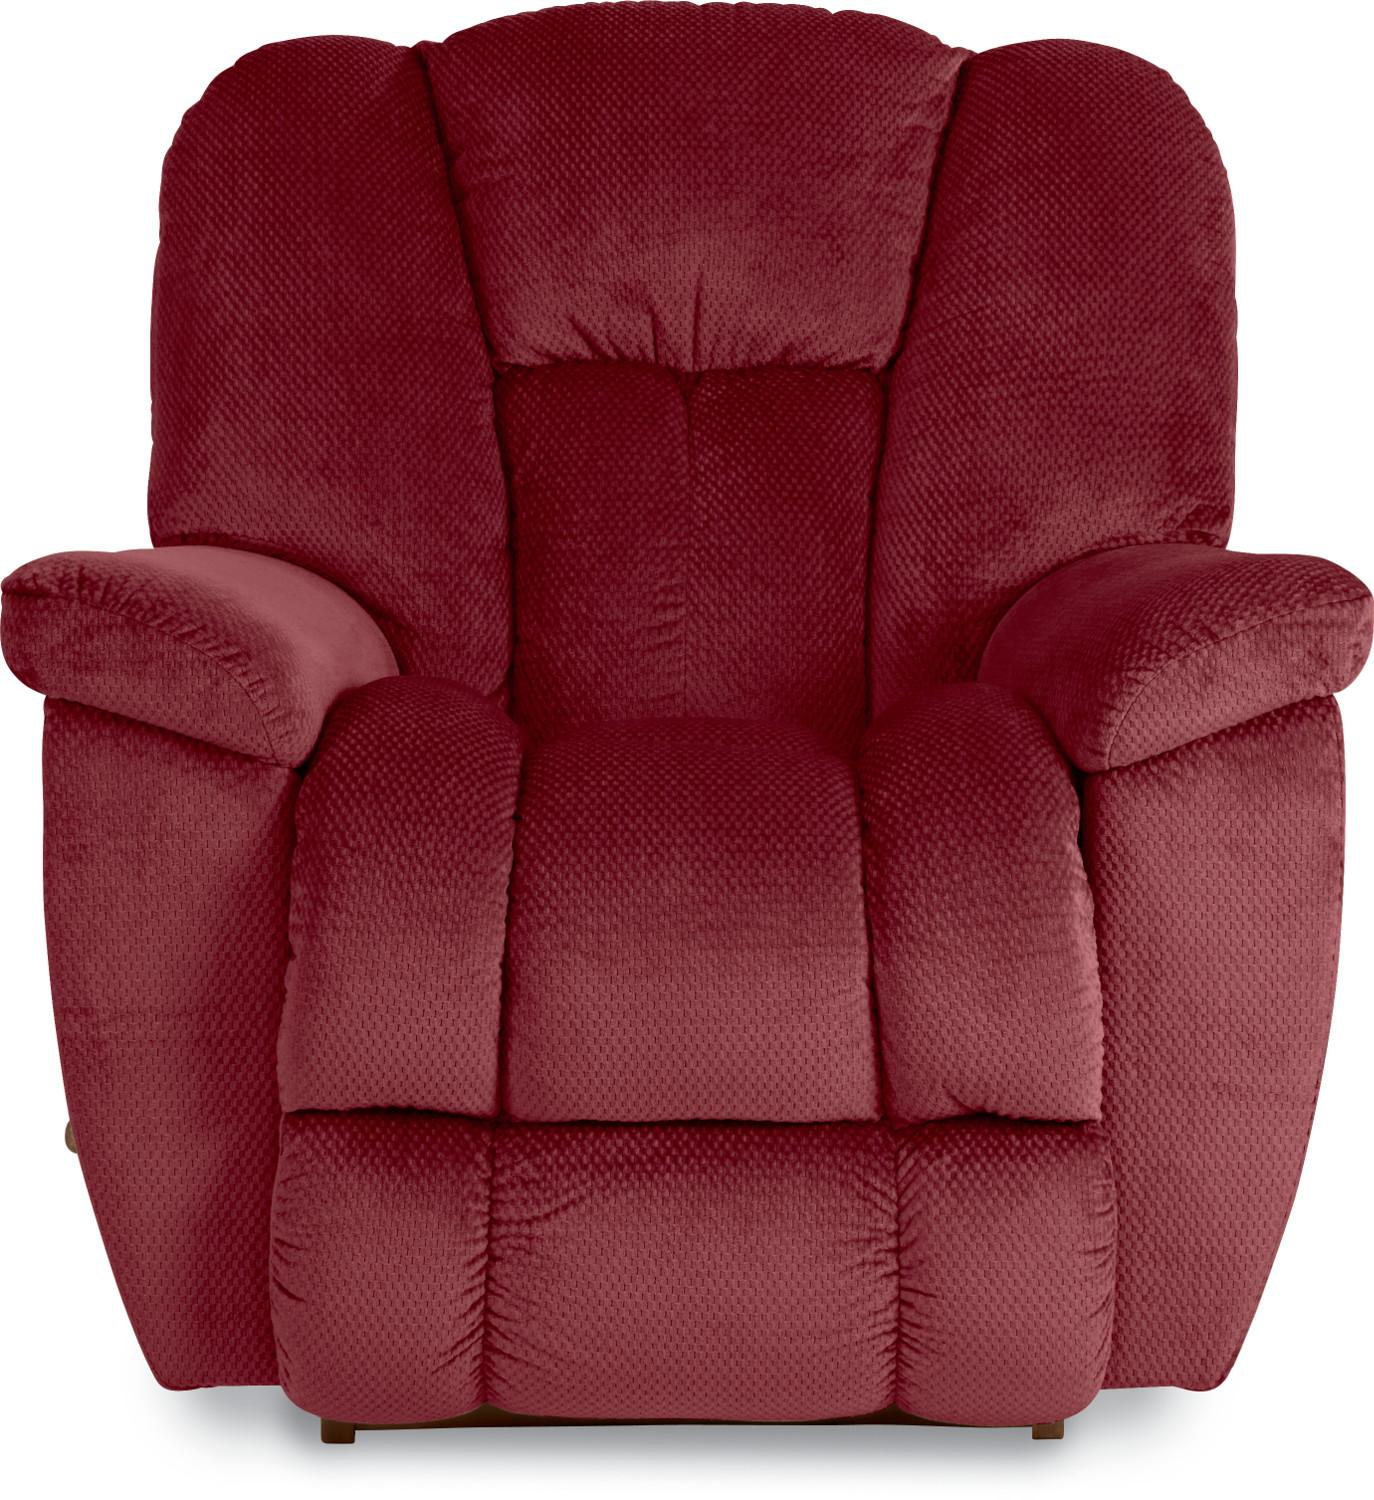 La-Z-Boy Maverick Reclina-Way® Recliner - Item Number: 015582D101208